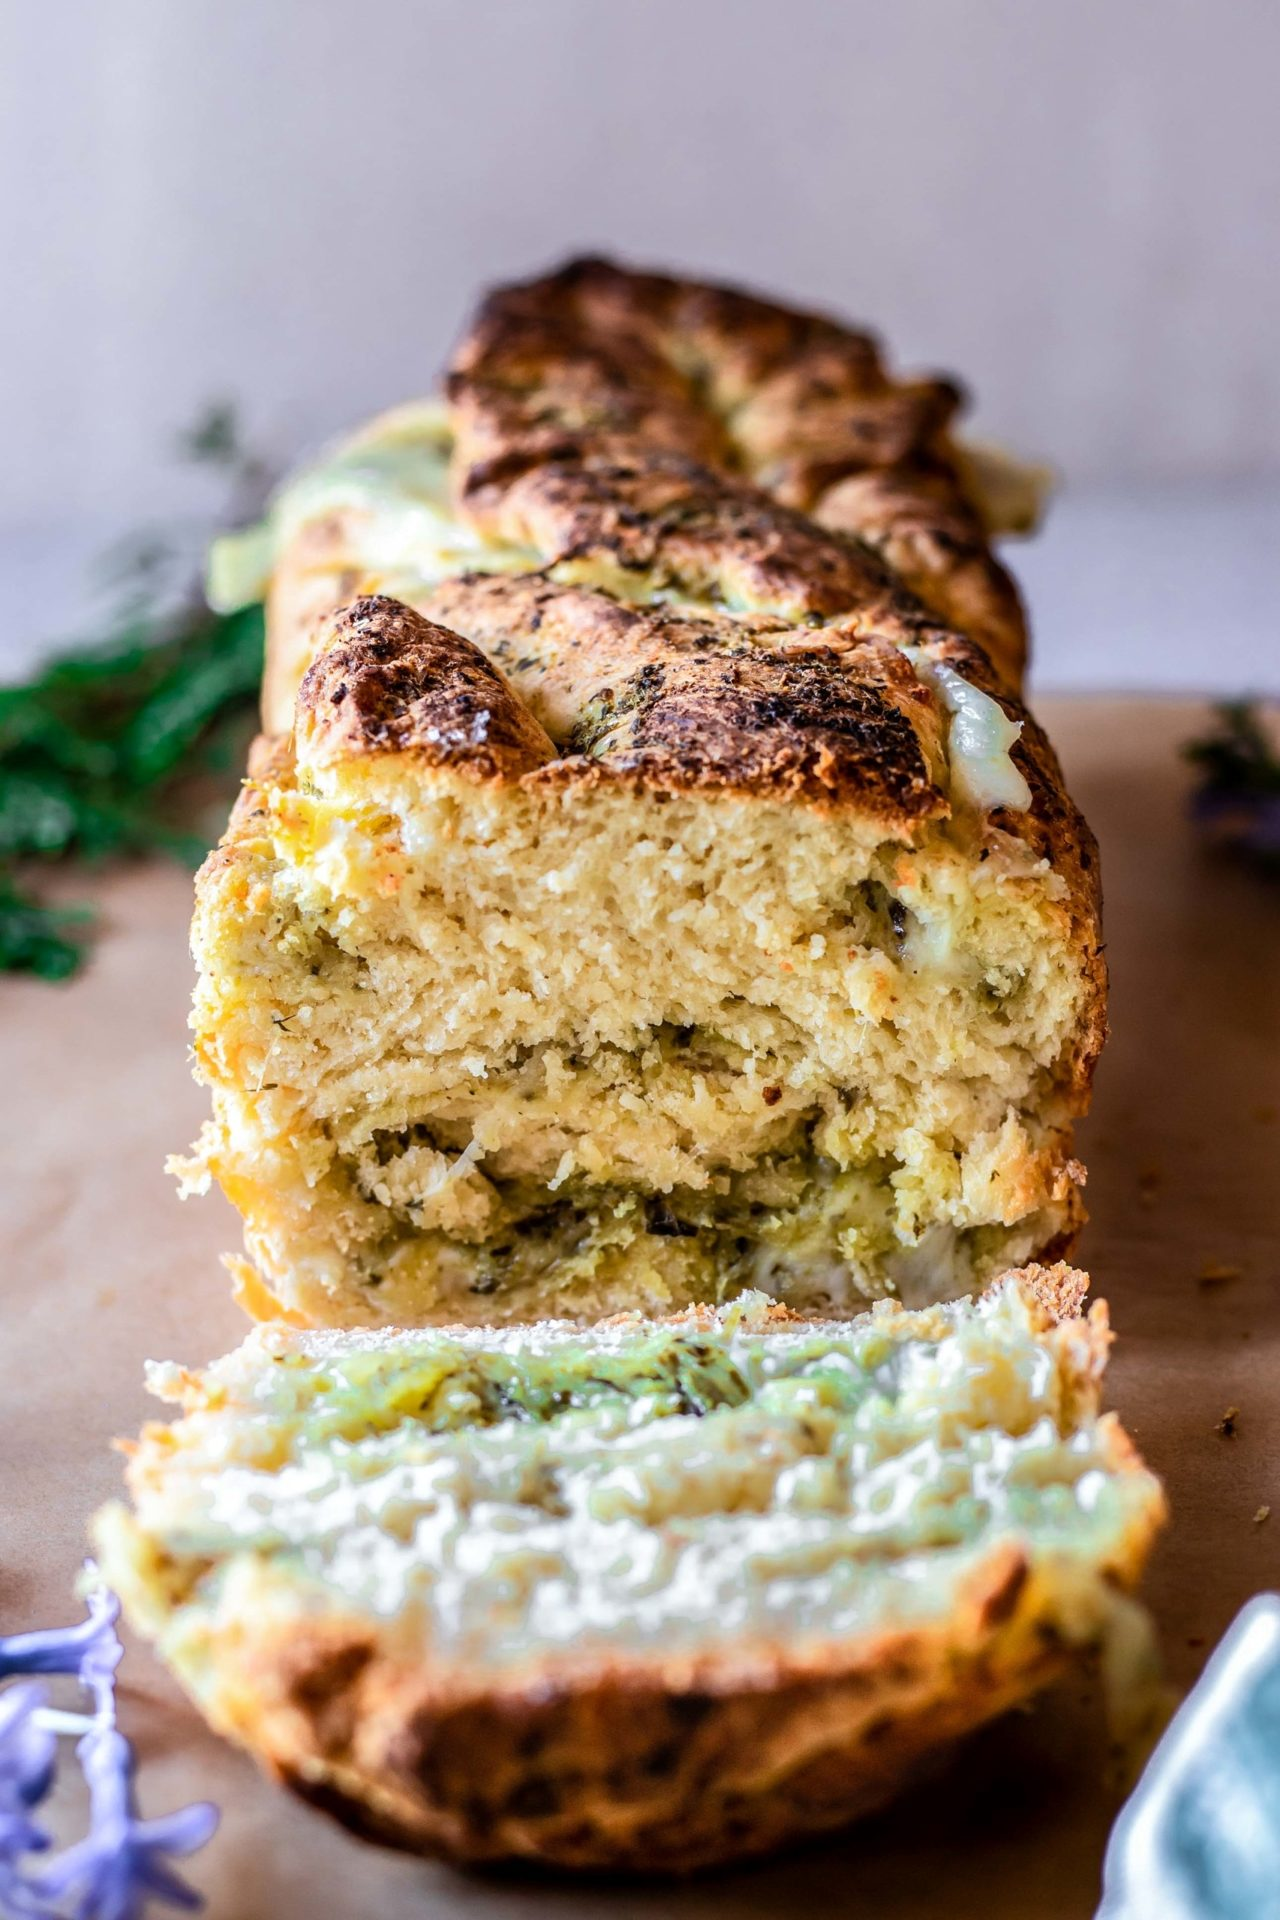 This Gluten Free Mozzarella and Pesto Stuffed Bread is pillowy soft, tender, flavorful, so cheesy, pesto-infused, and just beyond delicious!